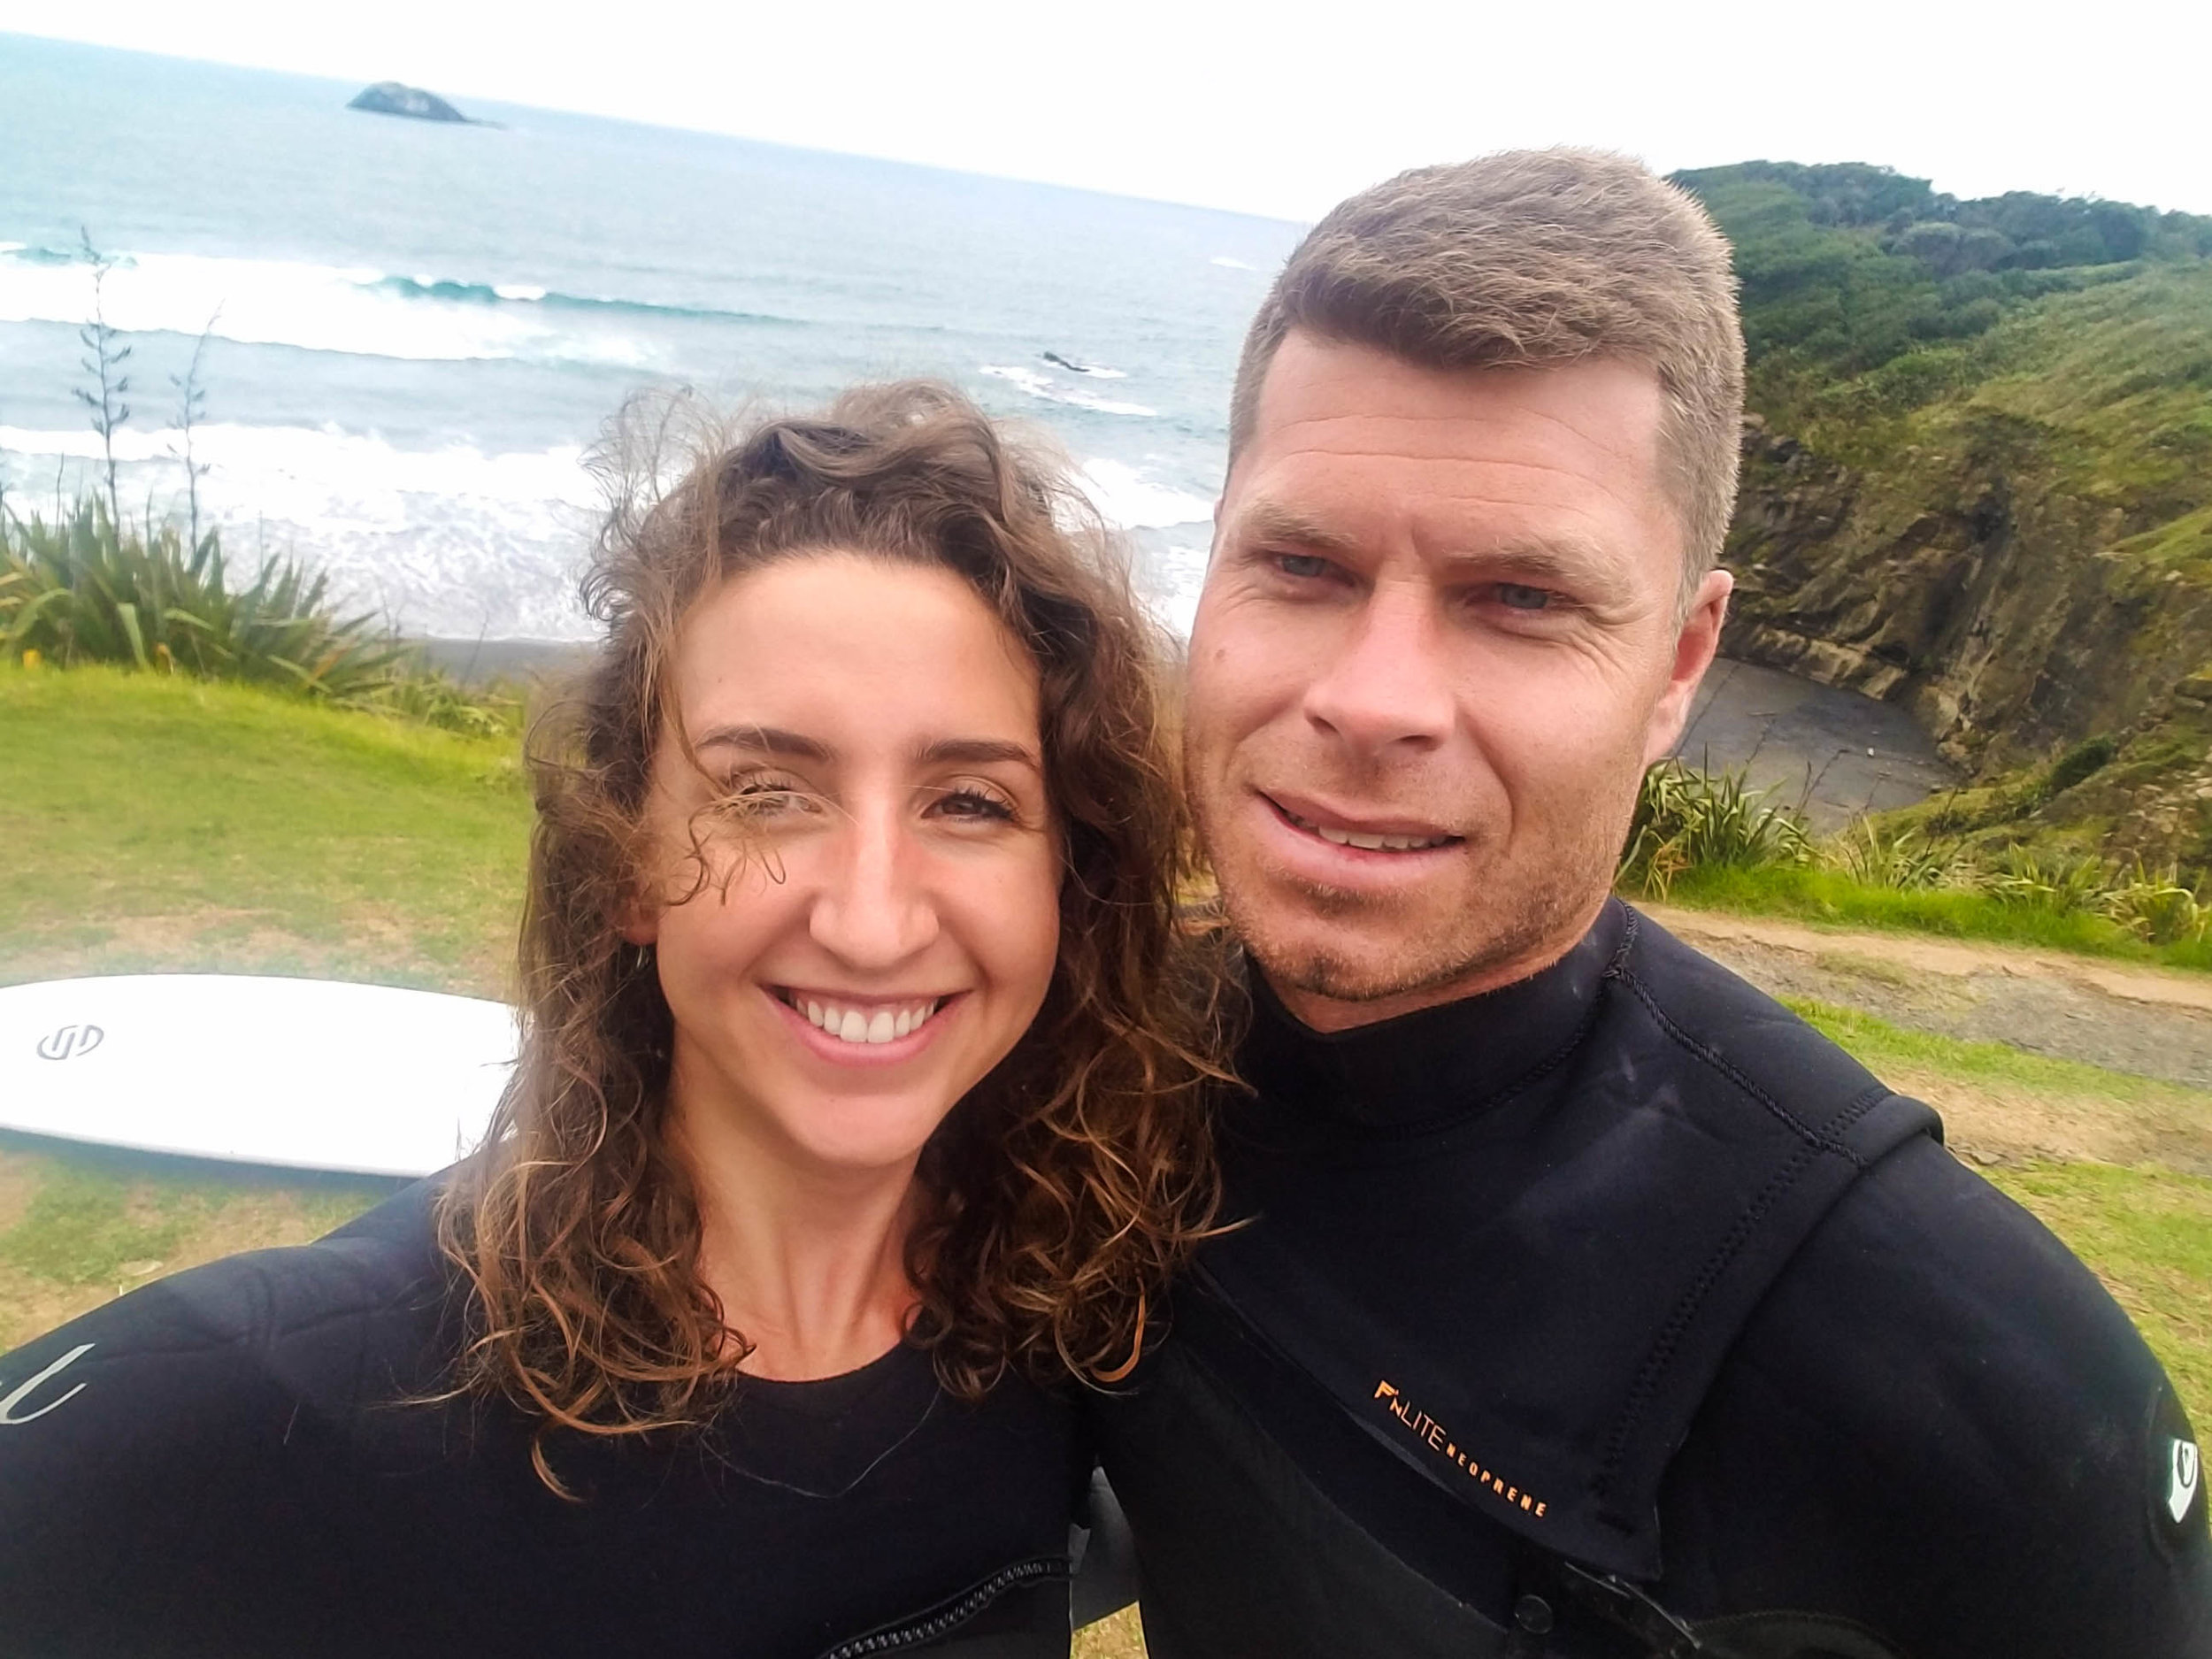 Pre-surf at Maori Bay.